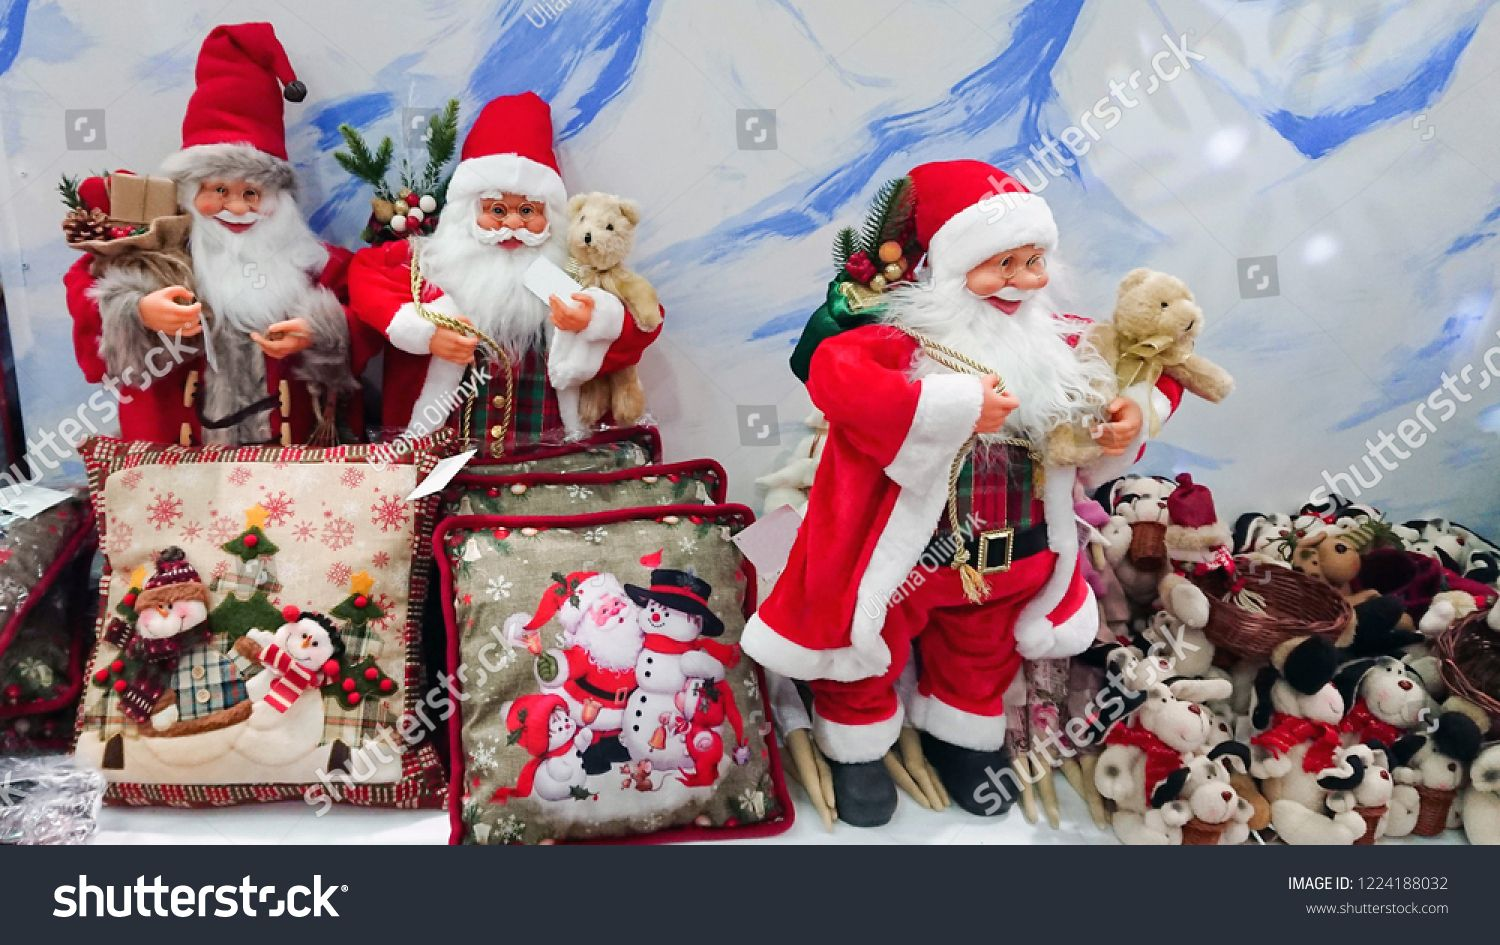 Christmas Decor Statuettes And Pillows From Santa And Snowmen